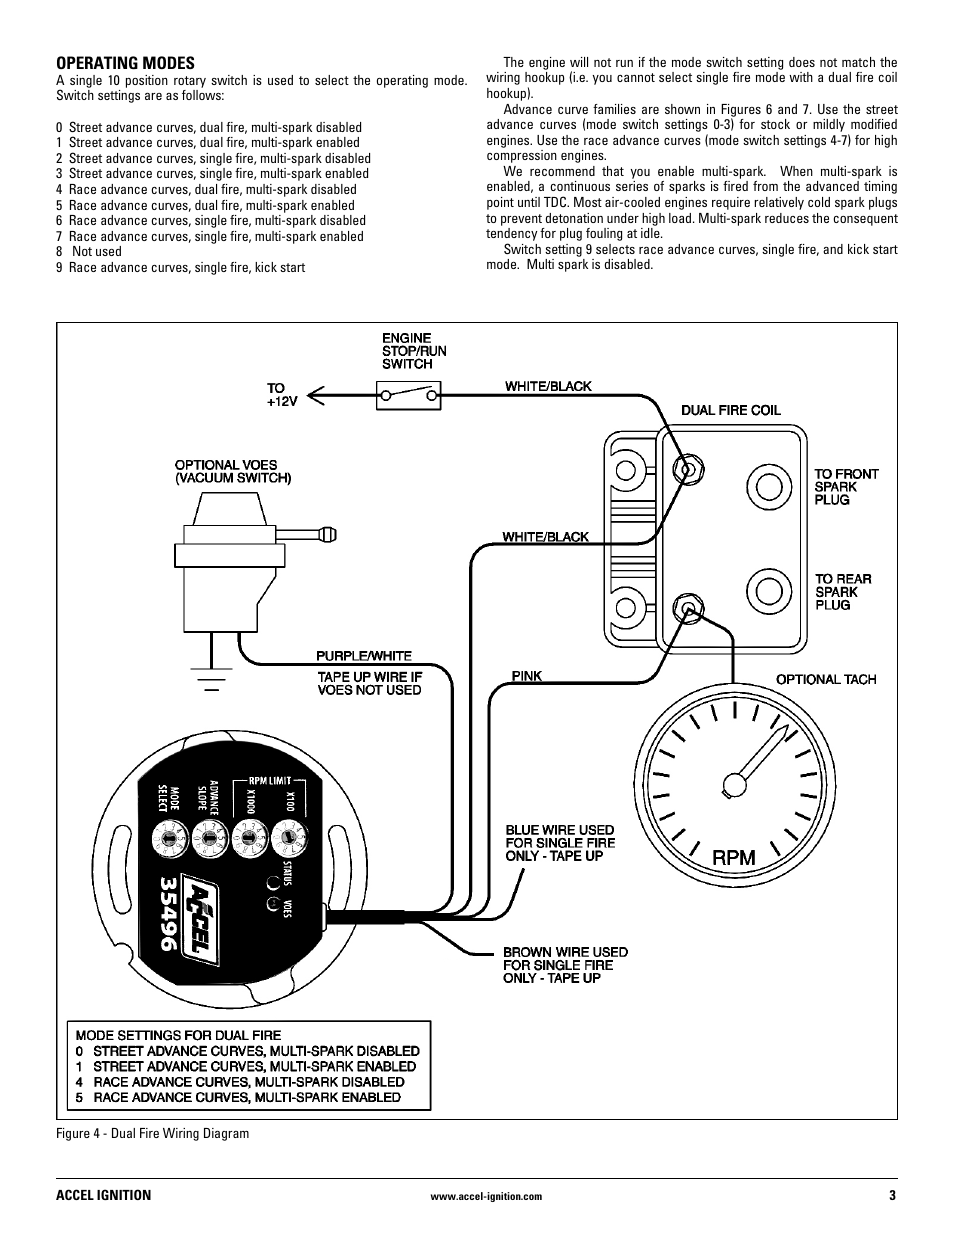 mallory ignition accel ignition 35496 page3 mallory ignition accel ignition 35496 user manual page 3 8 mallory ignition wiring diagram at mifinder.co